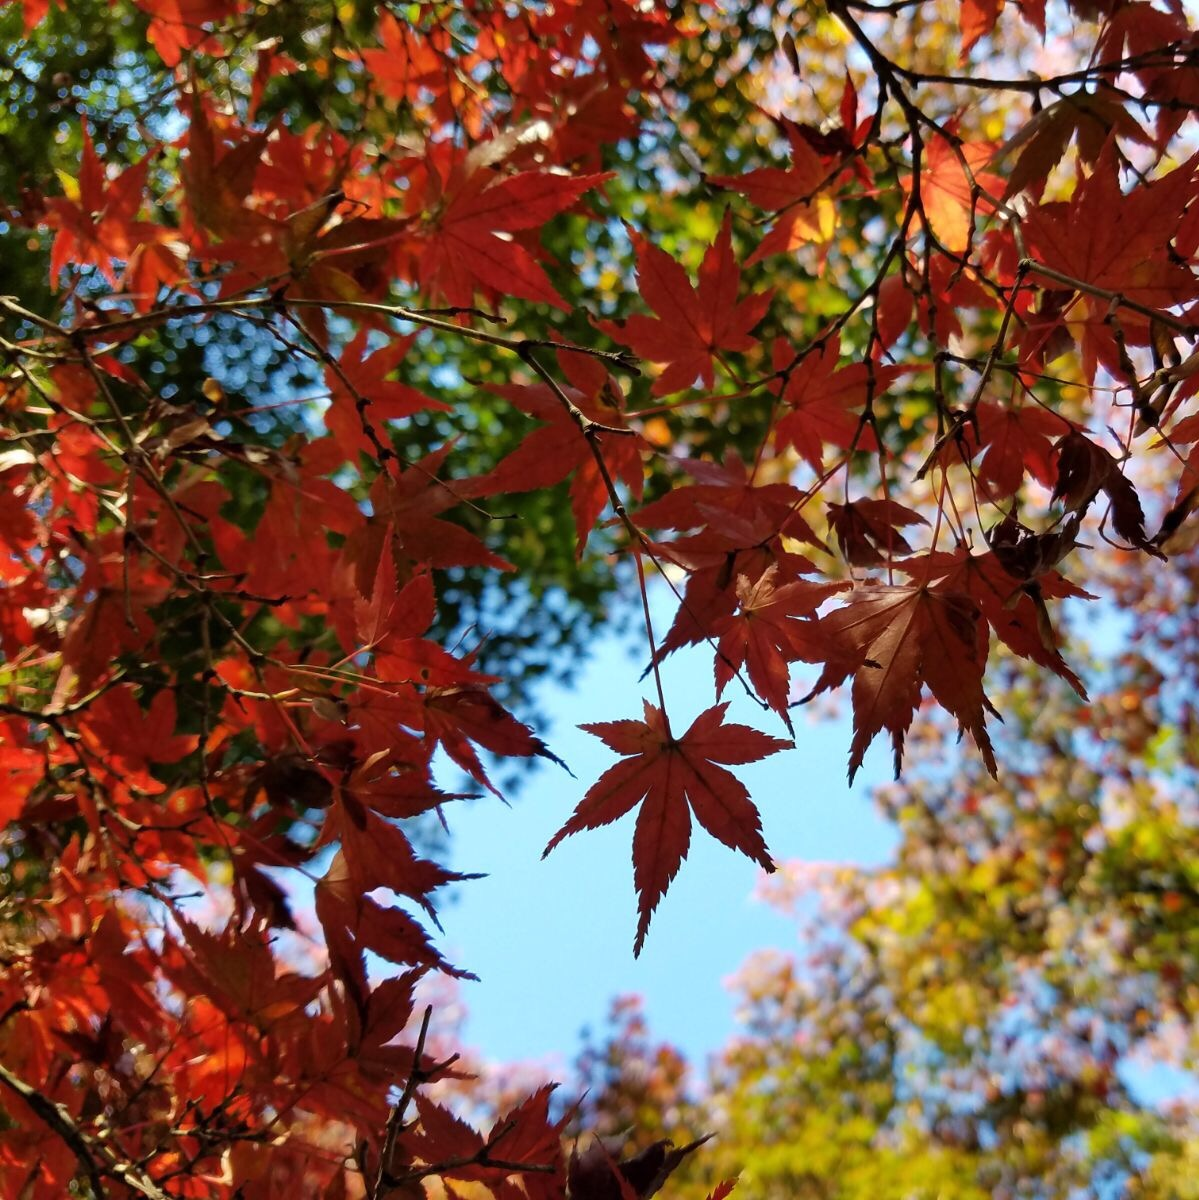 Autumn Leaves in Tokyo seen on a Maction Planet Tokyo Private Tour